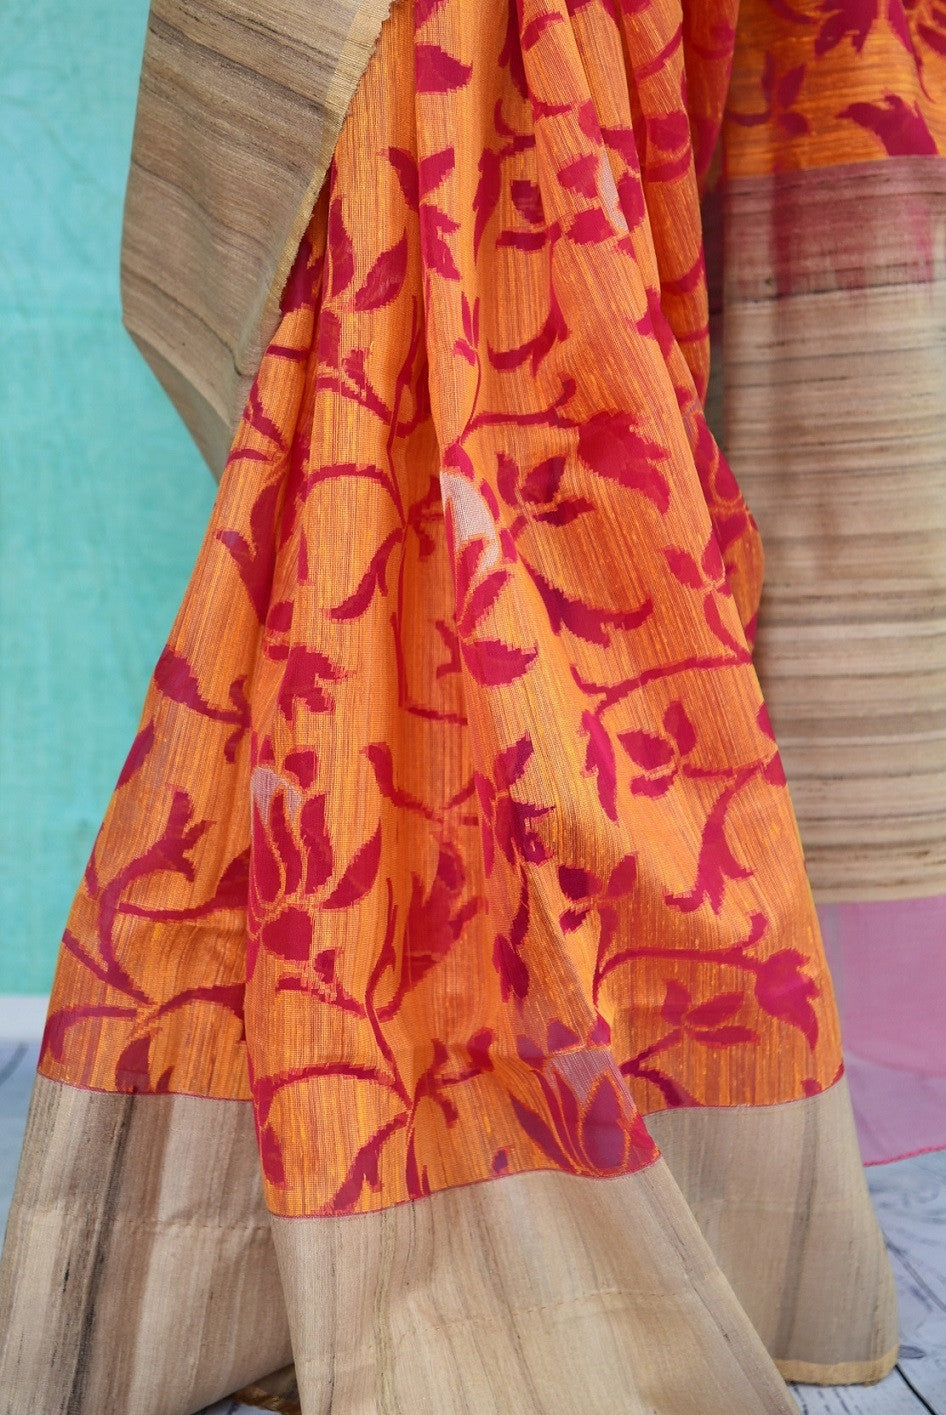 90B315 This lovely orange & red floral saree is a great pick for festive occasions, weddings and pujas. The matka jute sari can be bought at our ethnic Indian clothing store in USA online or in Edison.